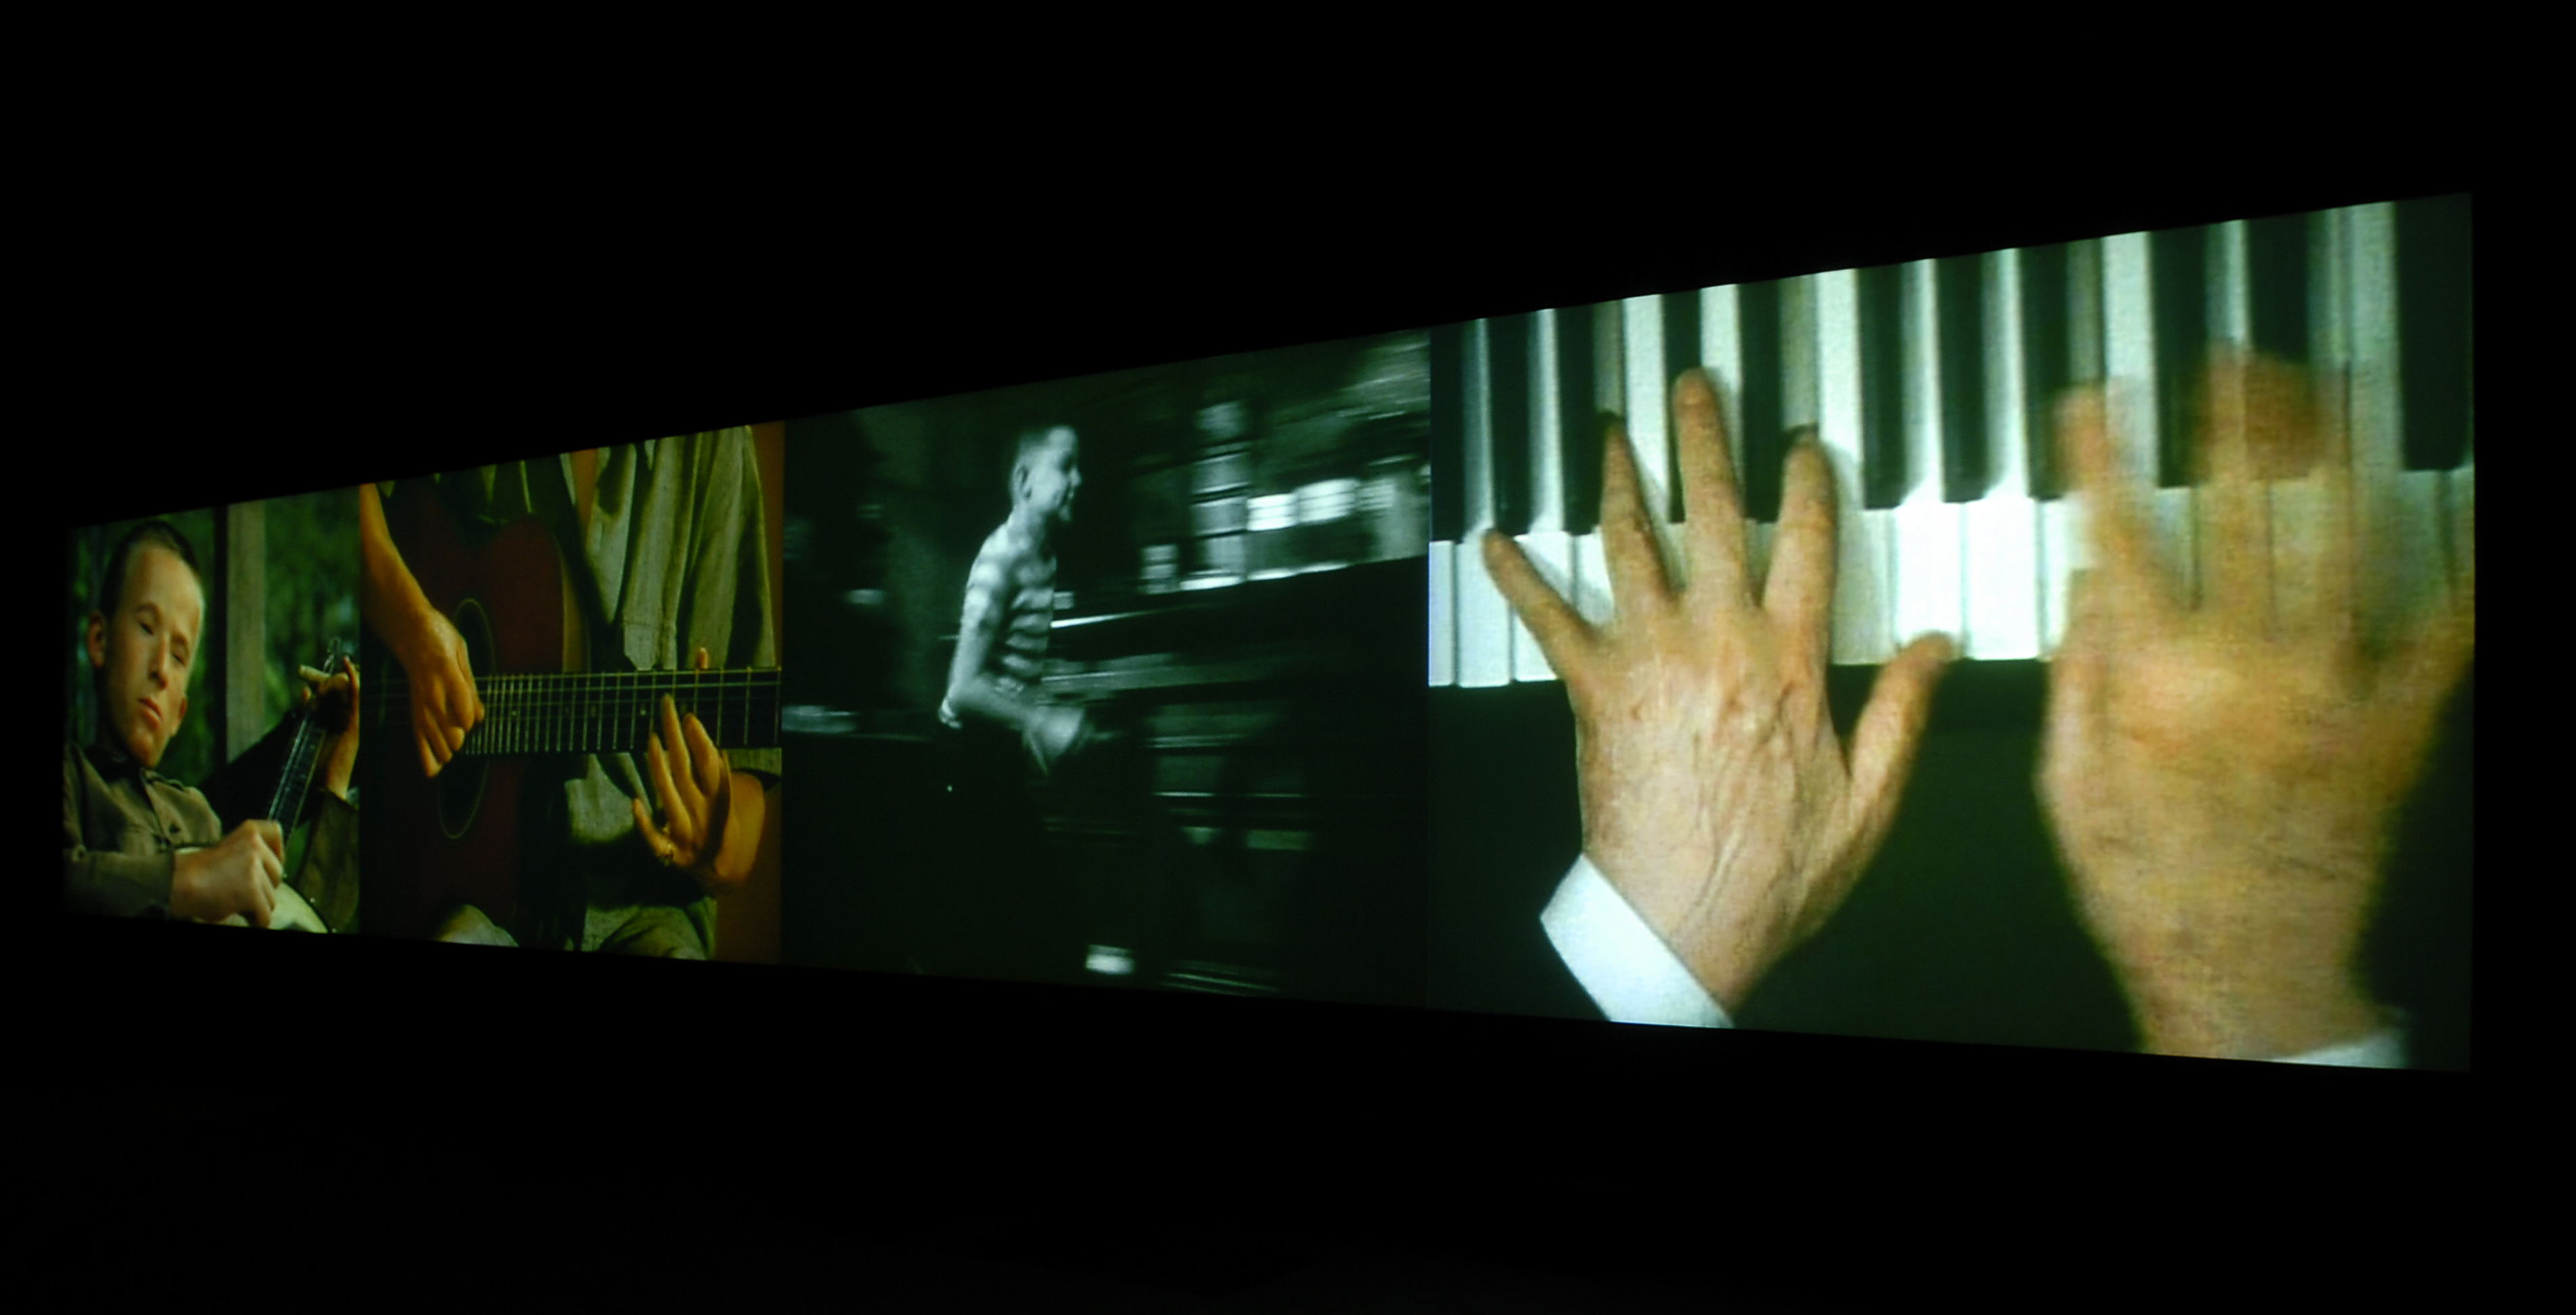 Christian Marclay, *Video Quartet*, 2002, four-channel video projection, with sound, running time: 14 minutes; each screen: 8 x 10 feet; overall installation: 8 x 40 feet. © Christian Marclay. Courtesy Paula Cooper Gallery, New York and Tate, London.